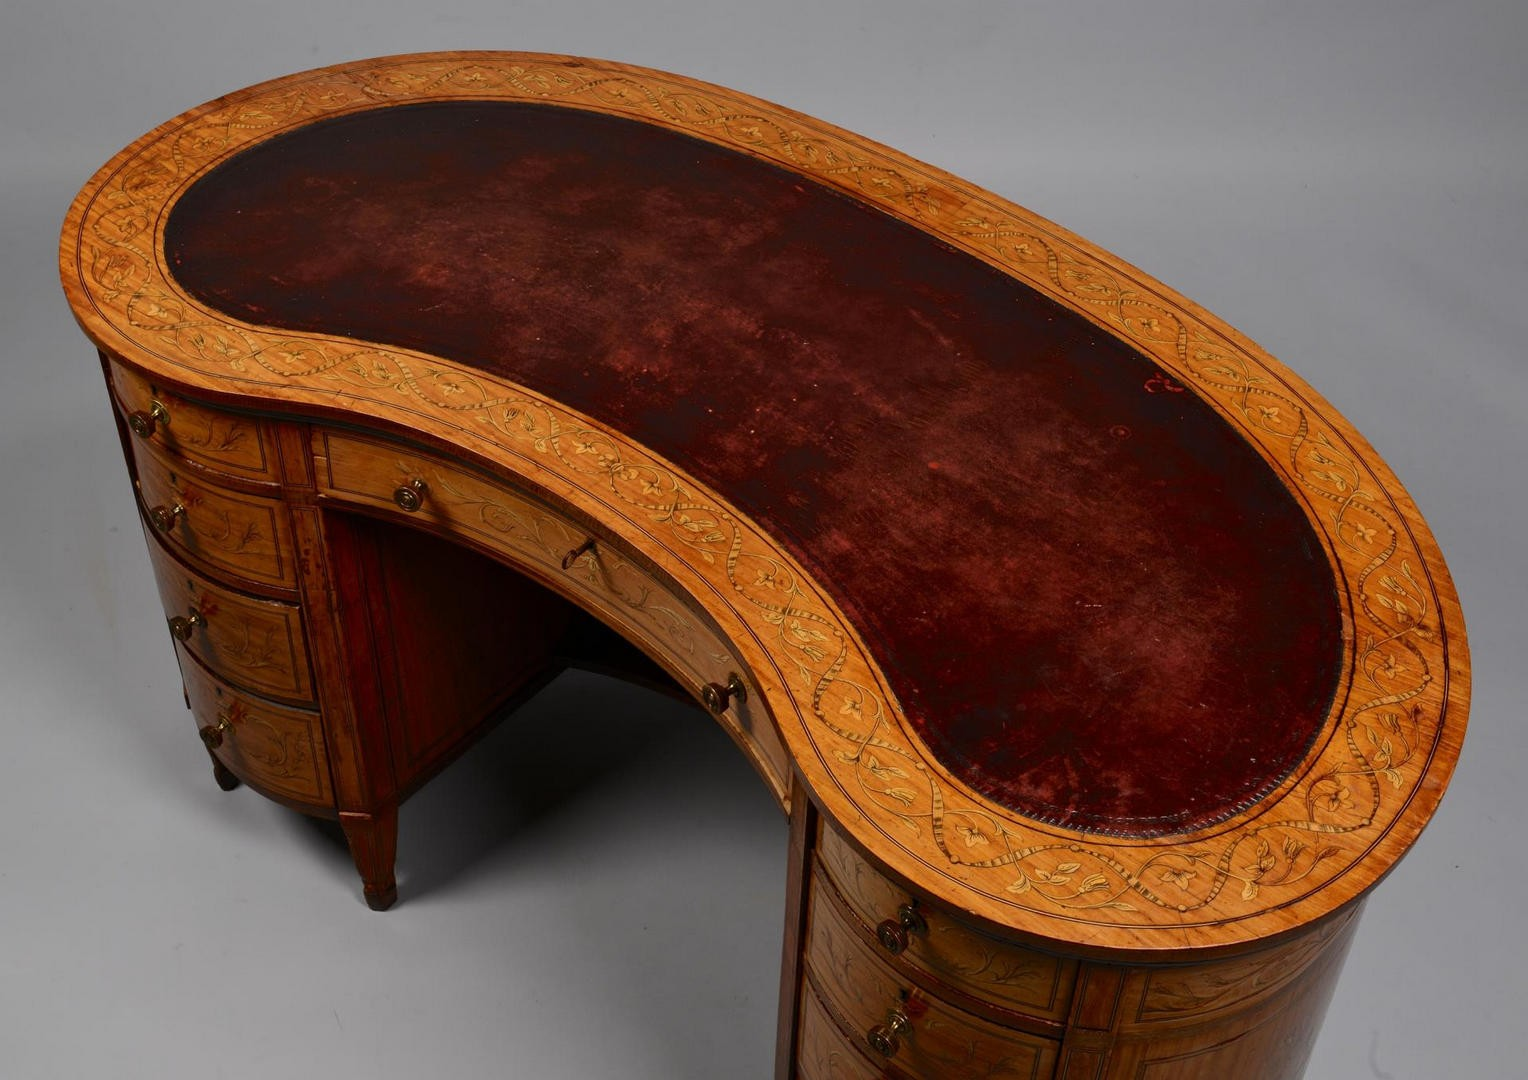 Lot 3594284: Adam Style Marquetry Desk